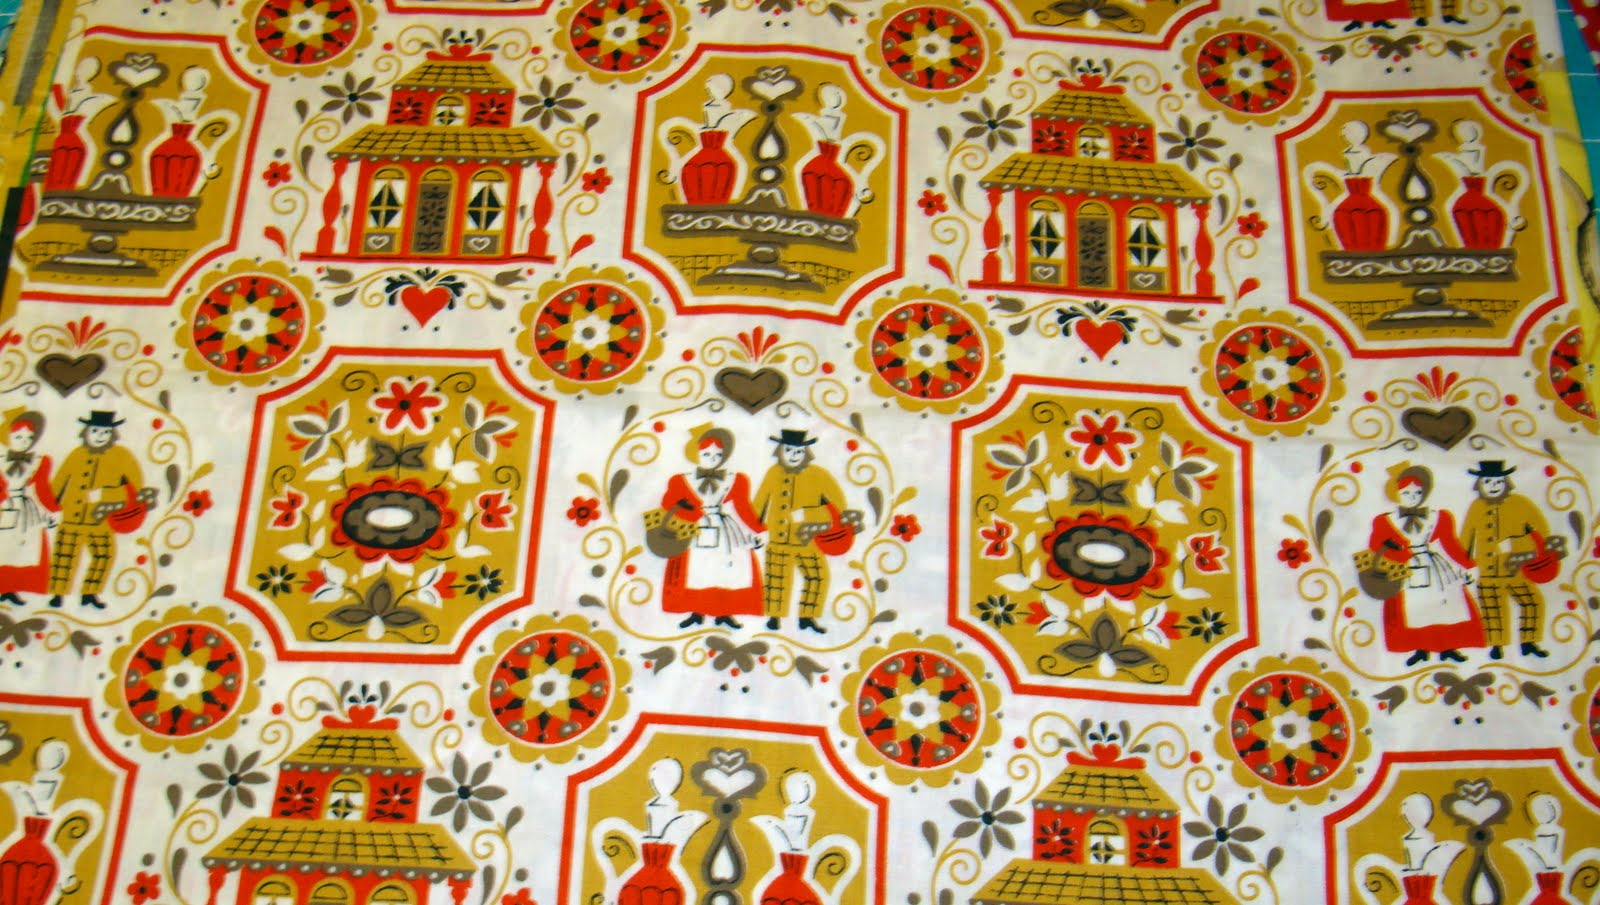 Fabric Friday - Vintage Kitchen - Freda's Hive